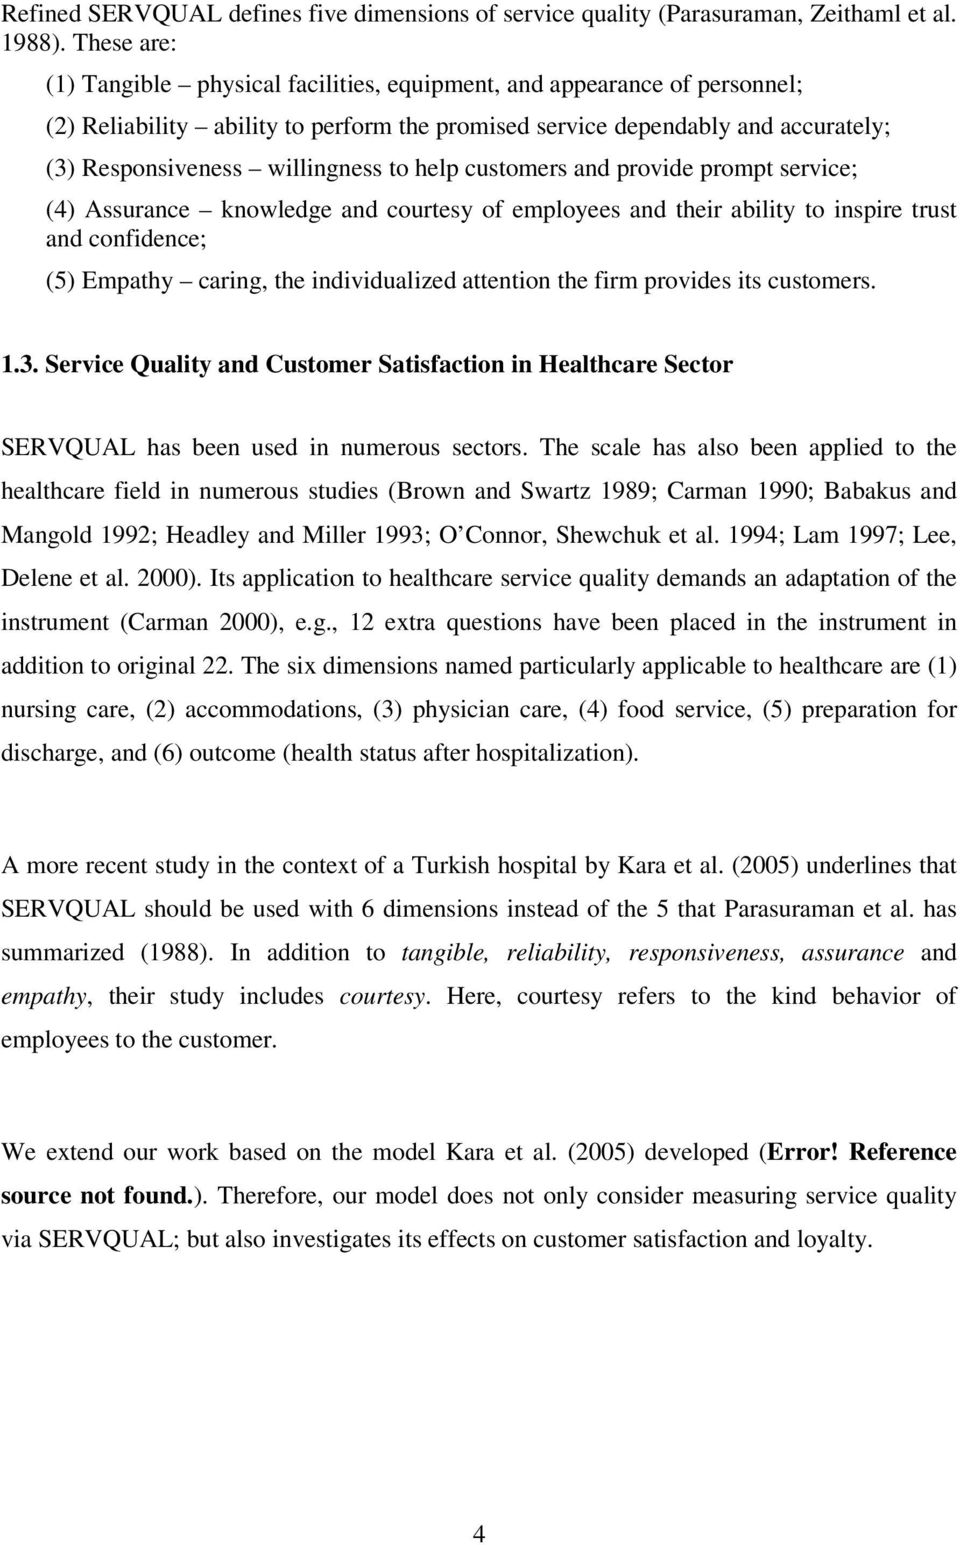 quality assurance and customer satisfaction